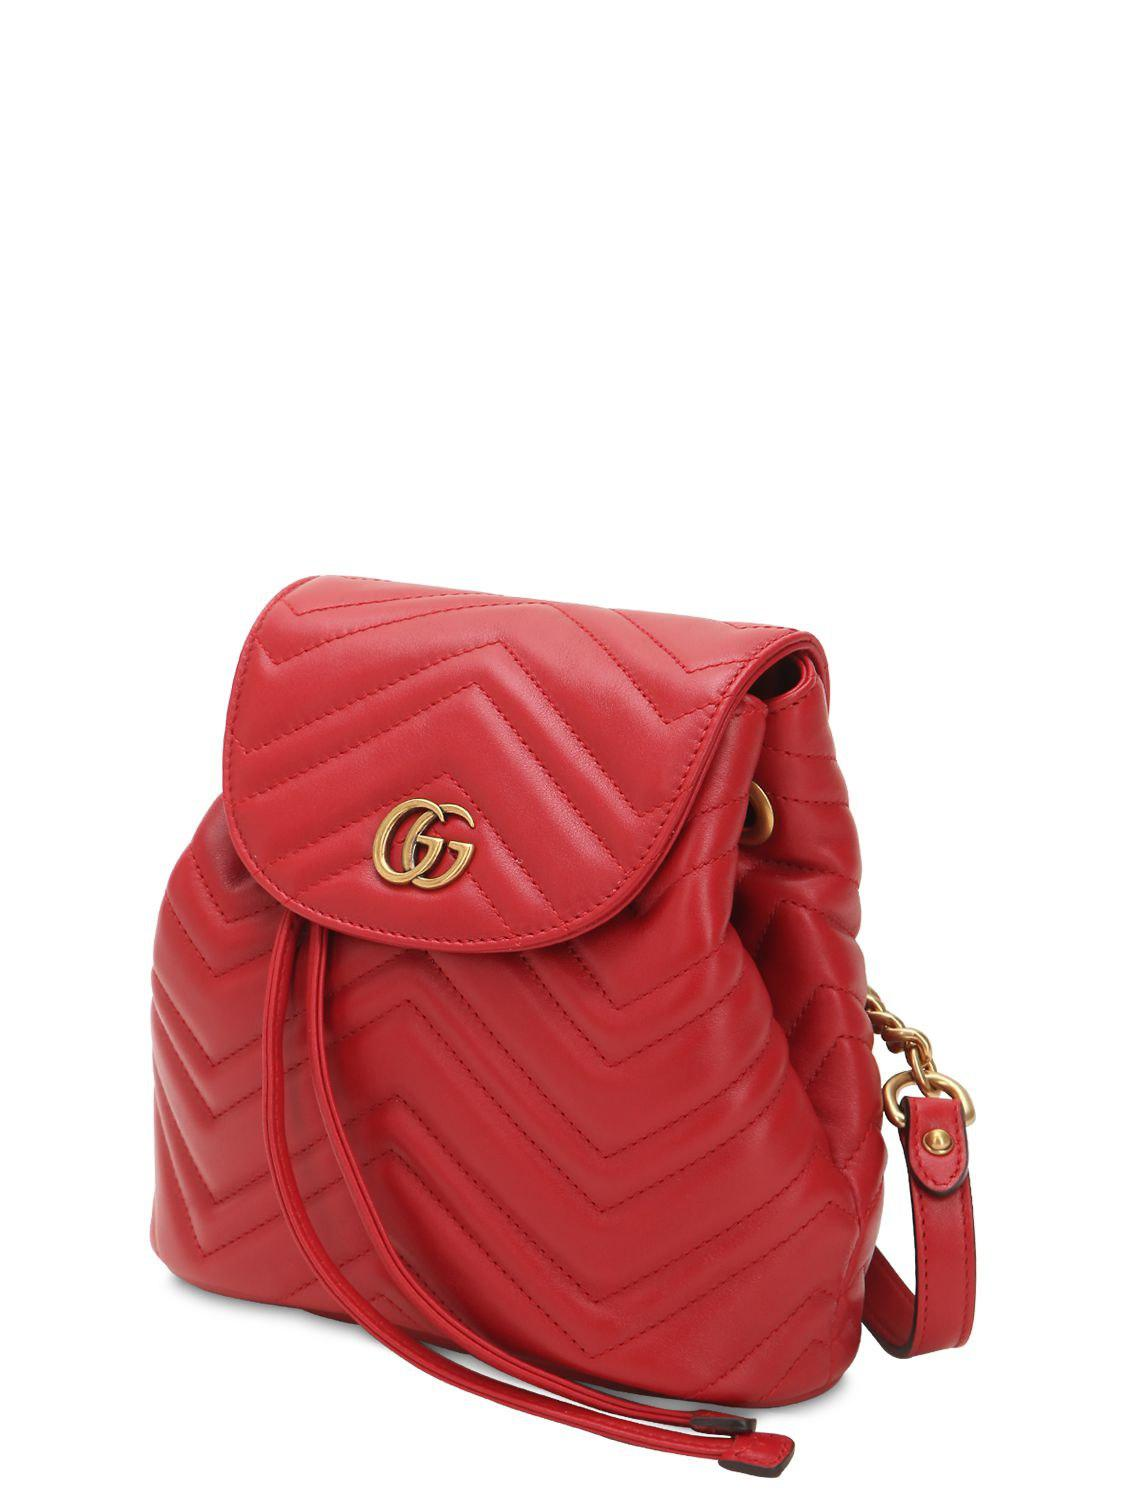 8130bfb2110 Gucci Mini Gg Marmont Leather Backpack in Red - Save 12% - Lyst